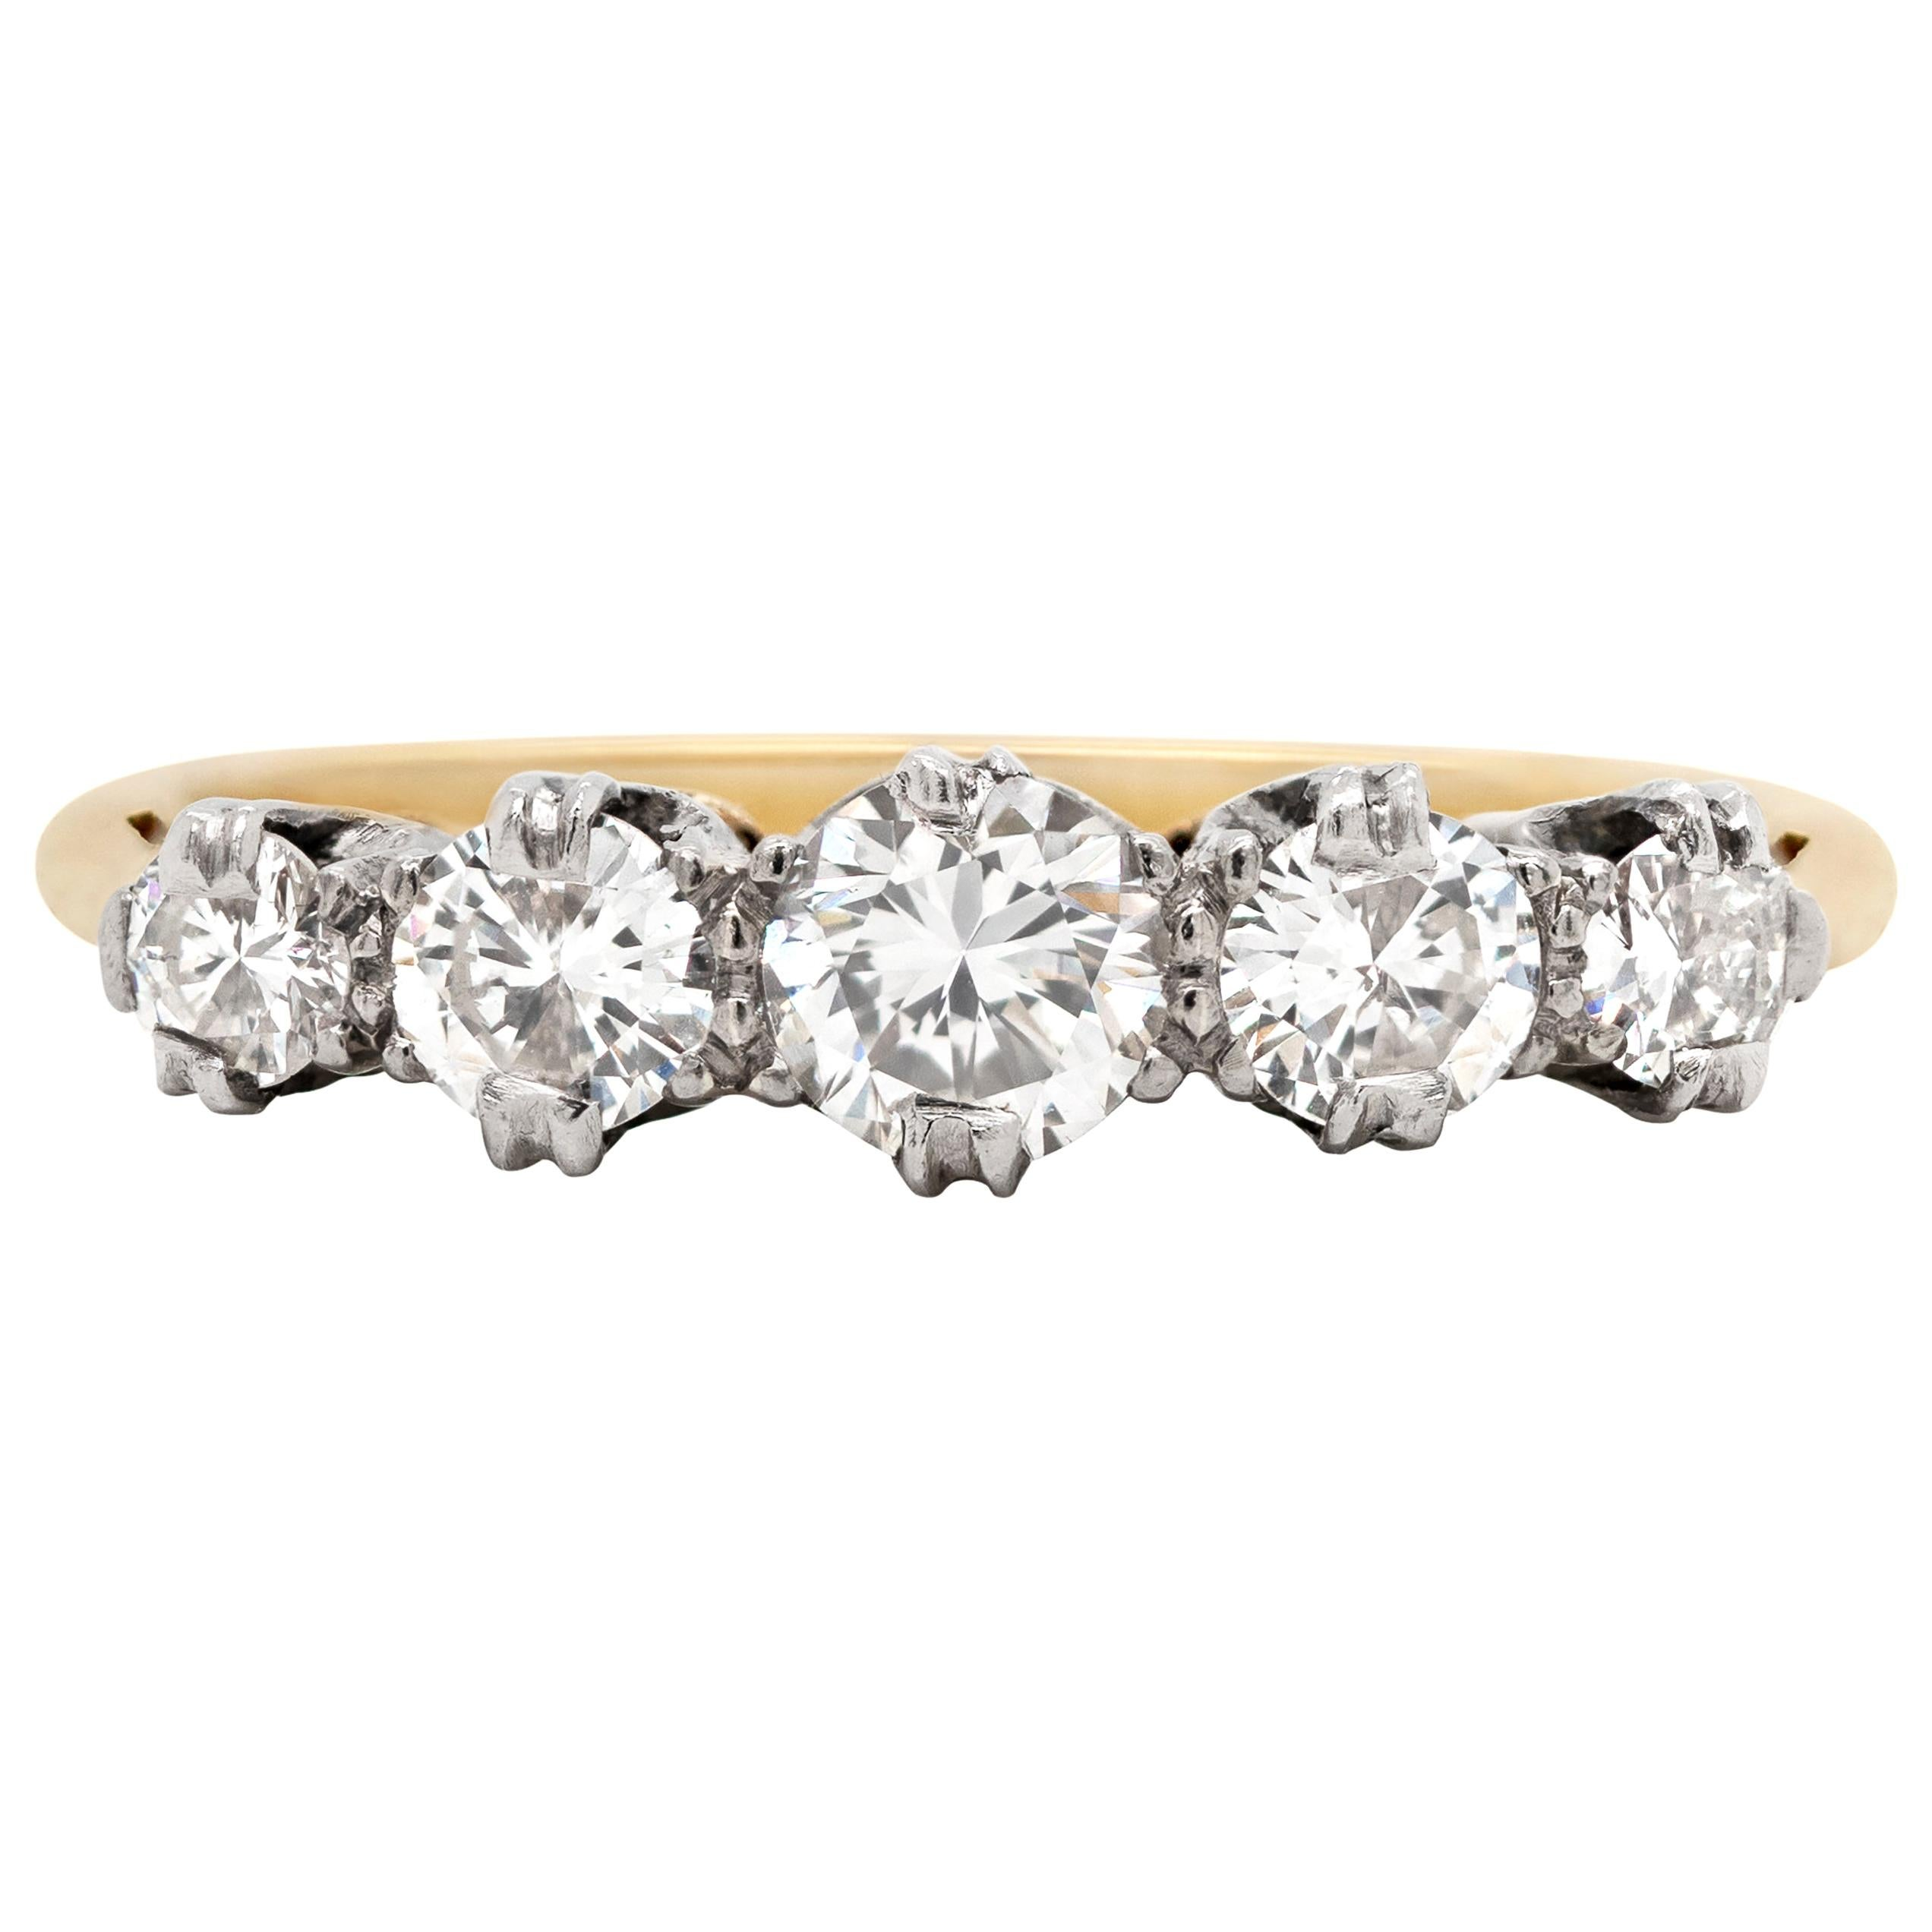 Vintage Five-Stone Diamond Platinum and 18 Carat Yellow Gold Ring